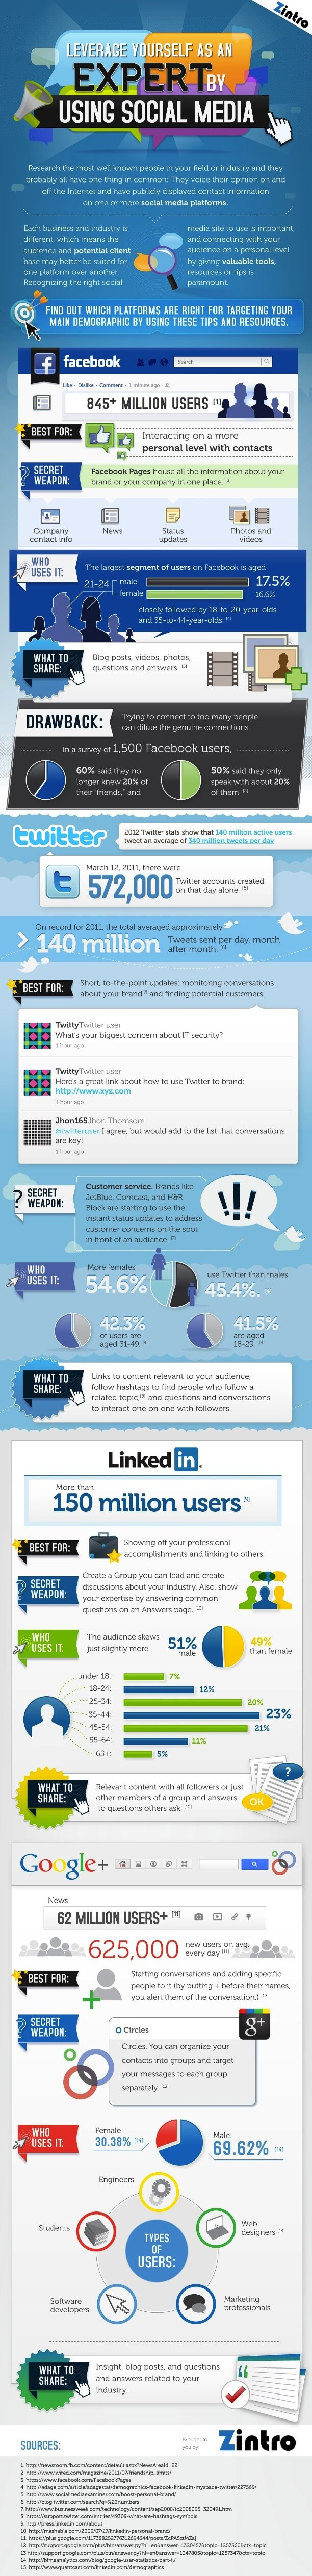 How to Leverage your Social Media Presence as an Expert? [INFOGRAPHIC]